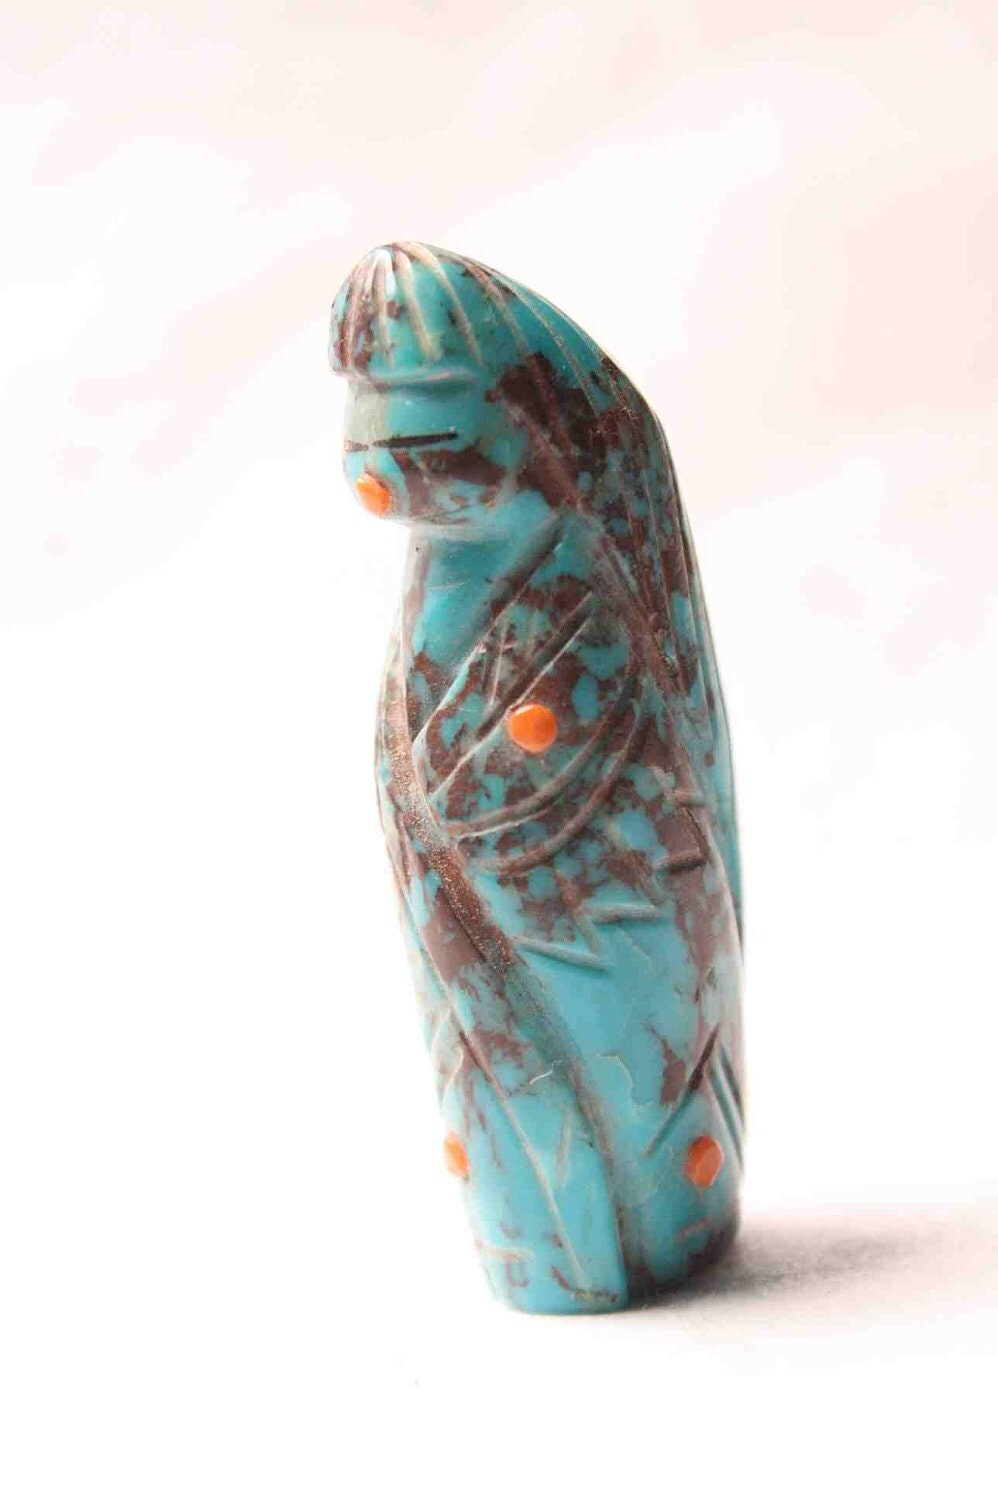 Zuni fetish corn maiden carved turquoise by foundaround on